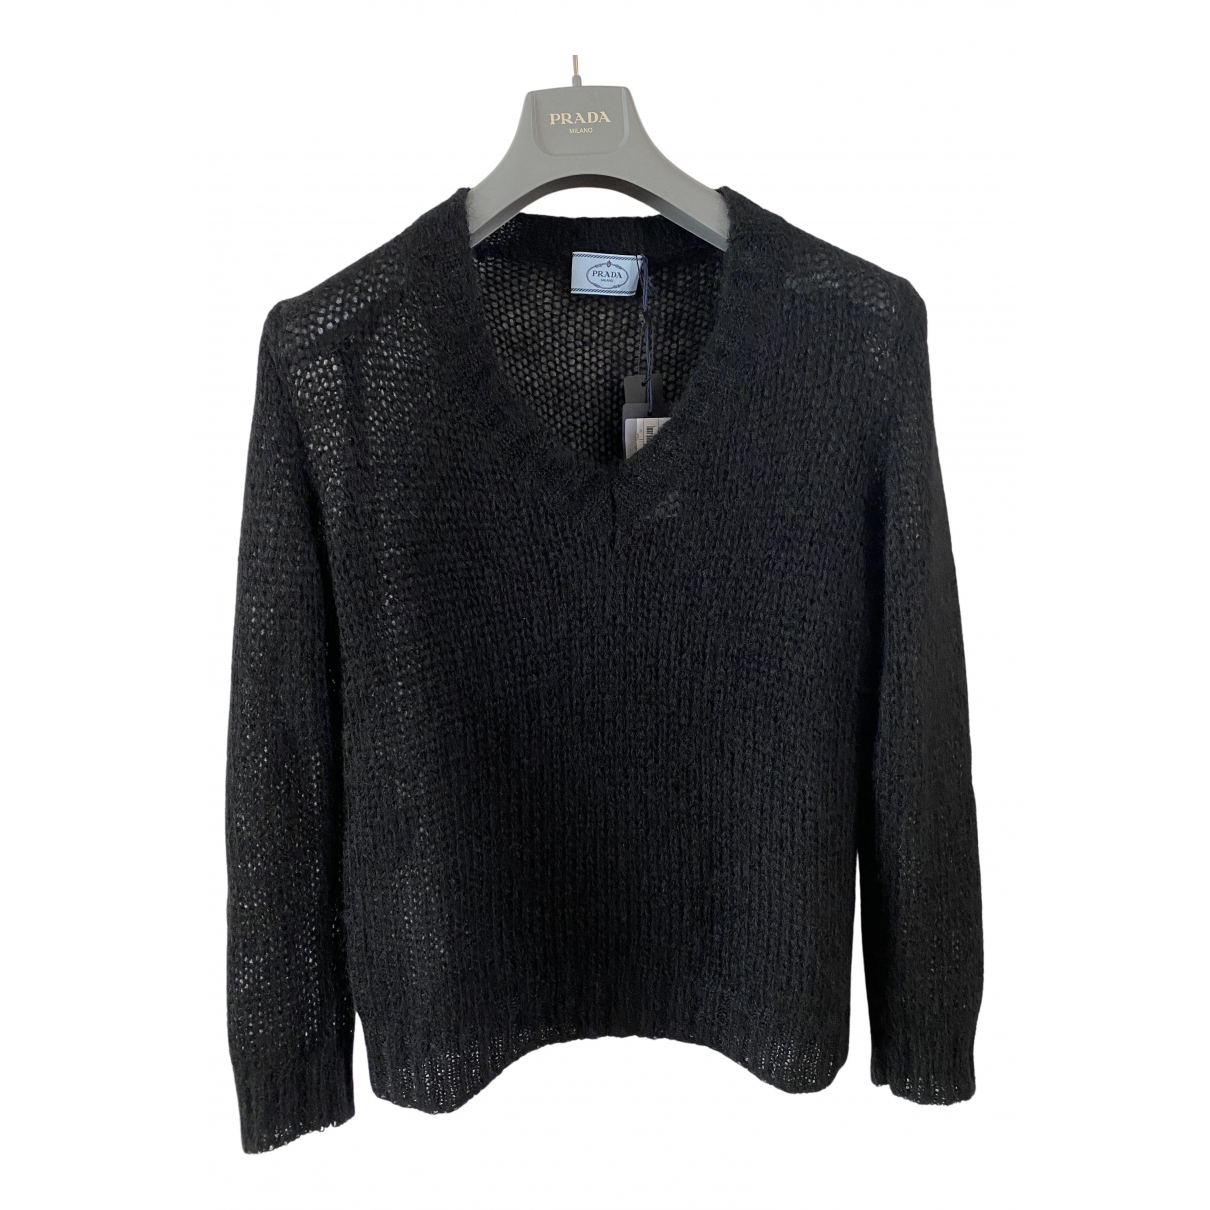 Prada N Black Wool Knitwear for Women 38 IT